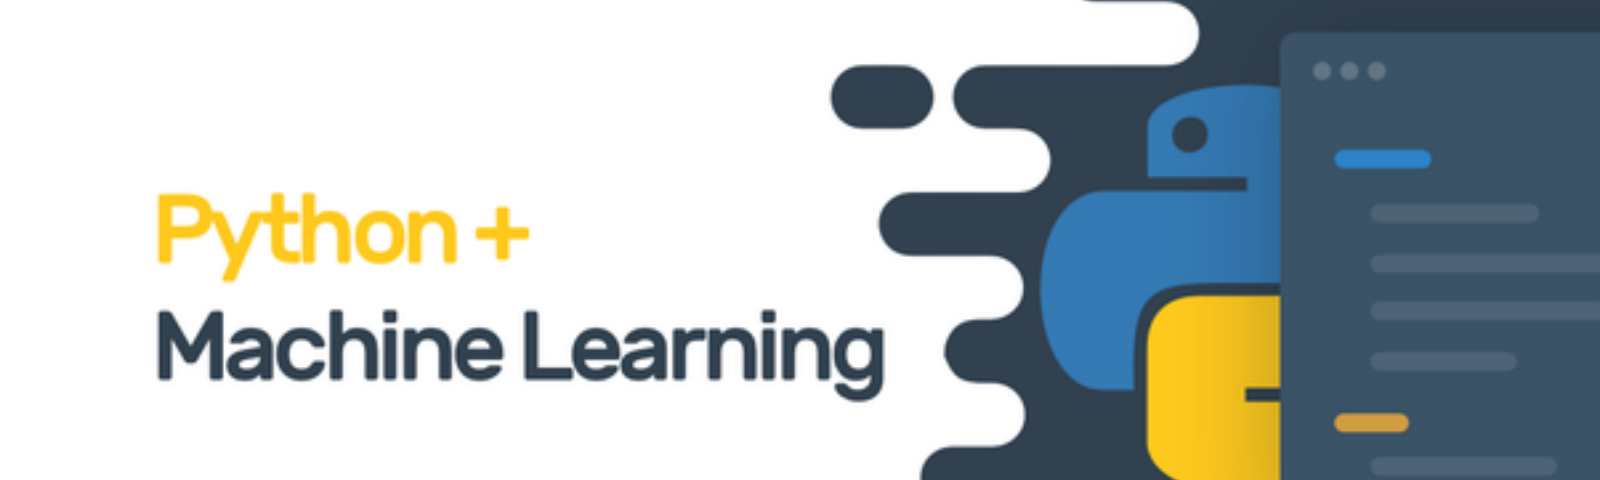 How to Master Python for Machine Learning from Scratch: A Step by Step Tutorial